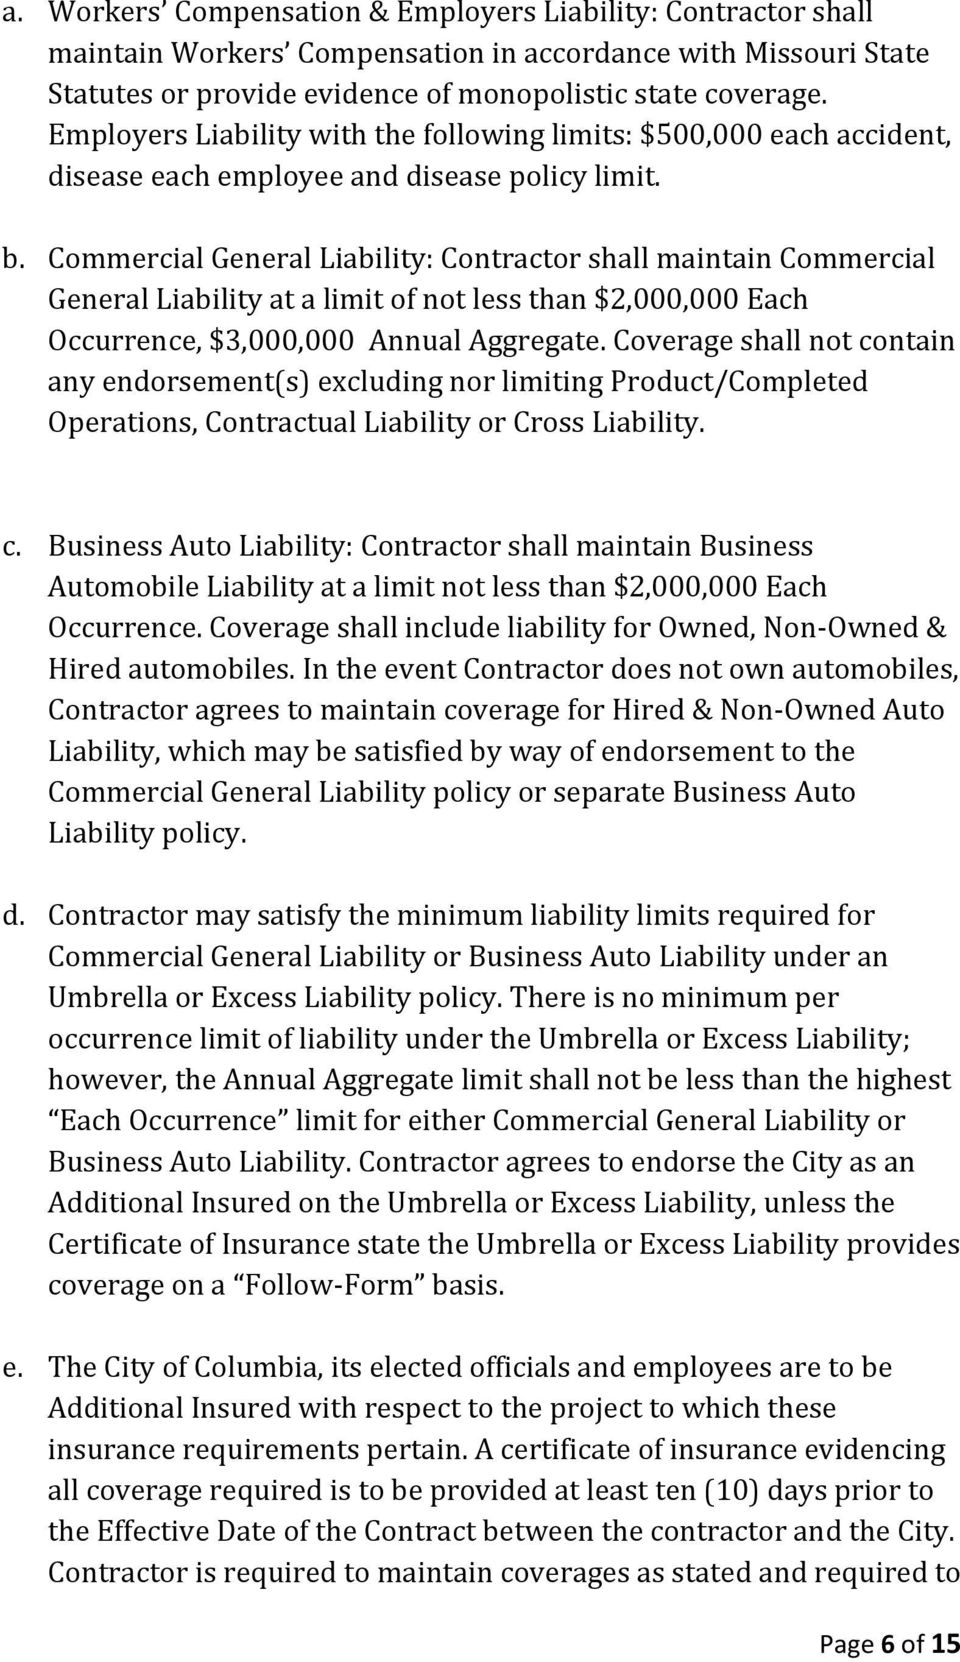 Commercial General Liability: Contractor shall maintain Commercial General Liability at a limit of not less than $2,000,000 Each Occurrence, $3,000,000 Annual Aggregate.